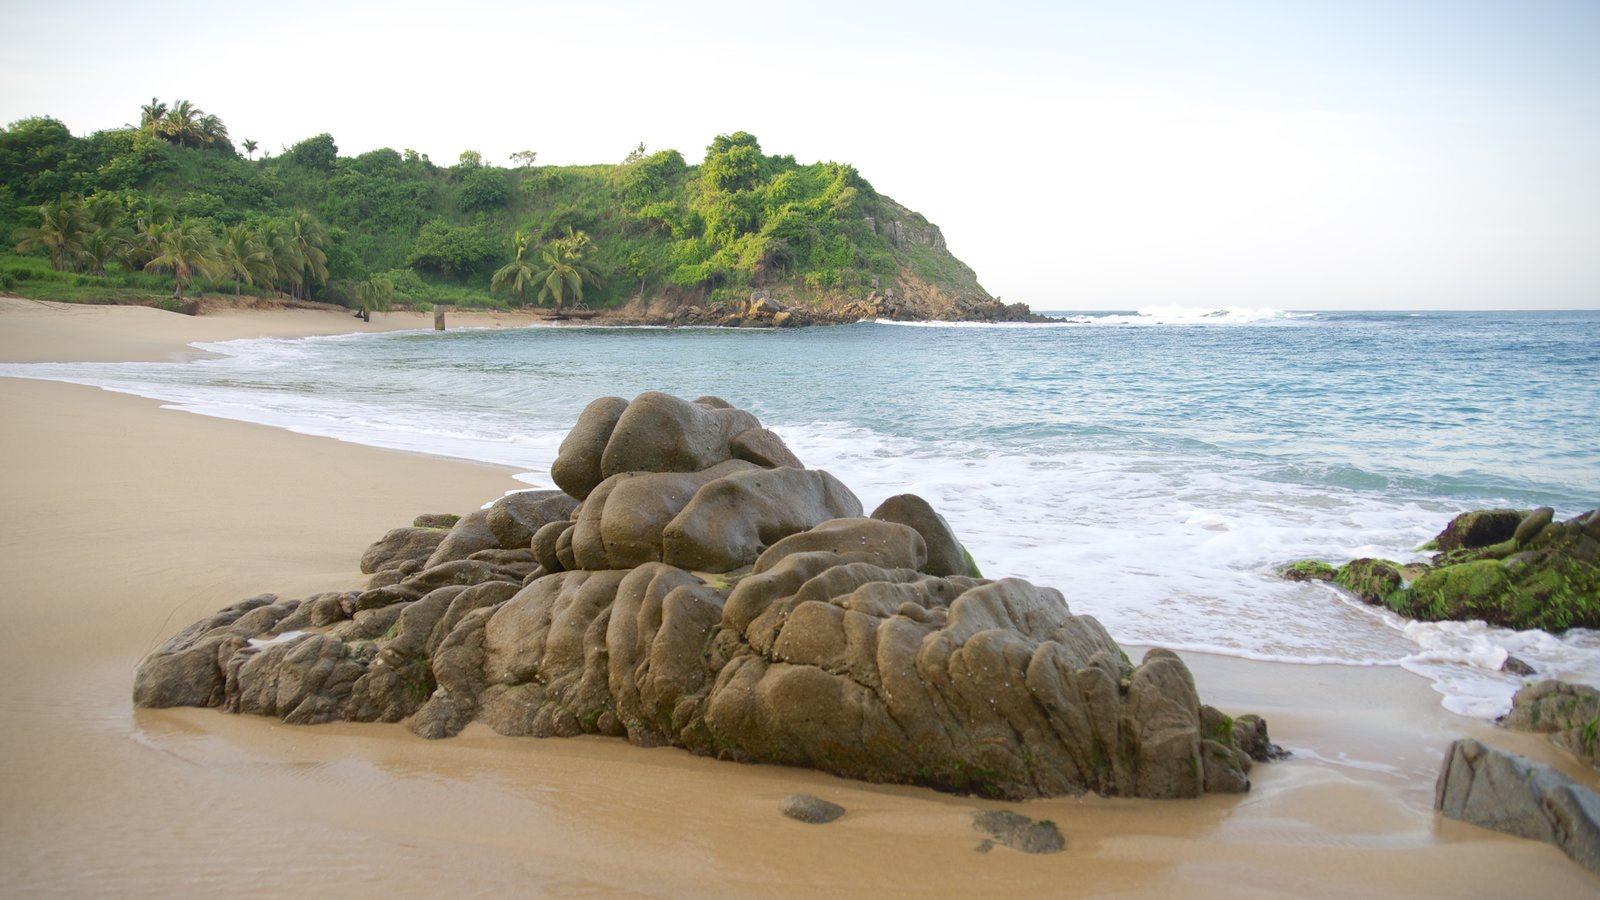 Bacocho Beach featuring rocky coastline and a sandy beach